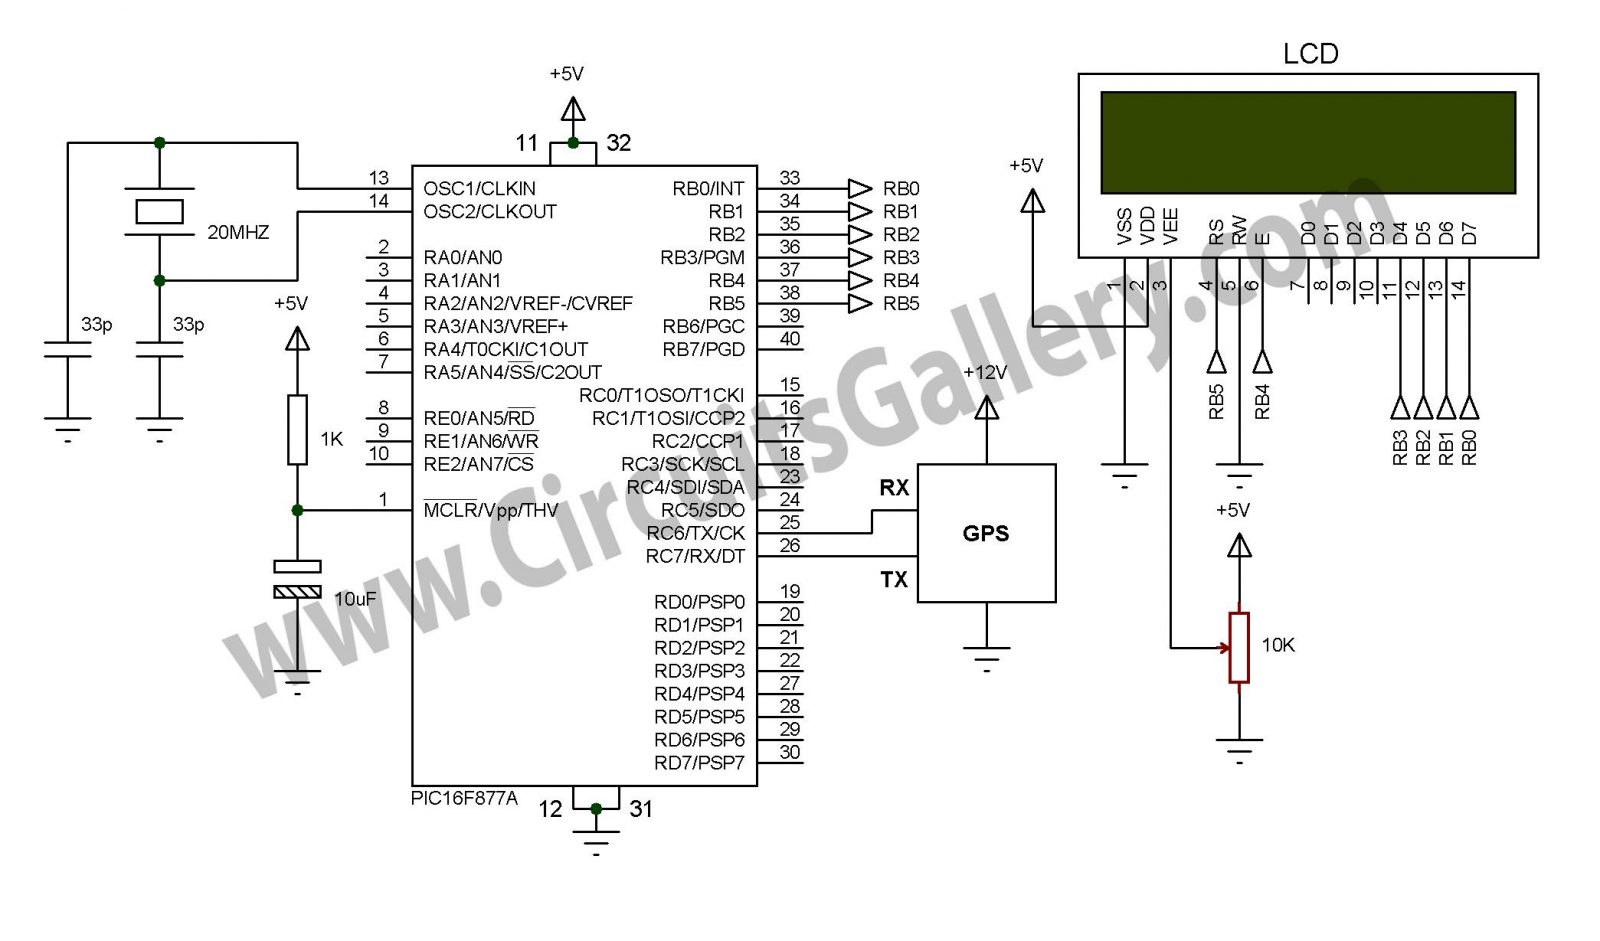 Simple Digital Gps Speedometer Using Pic16f877a With Lcd Display